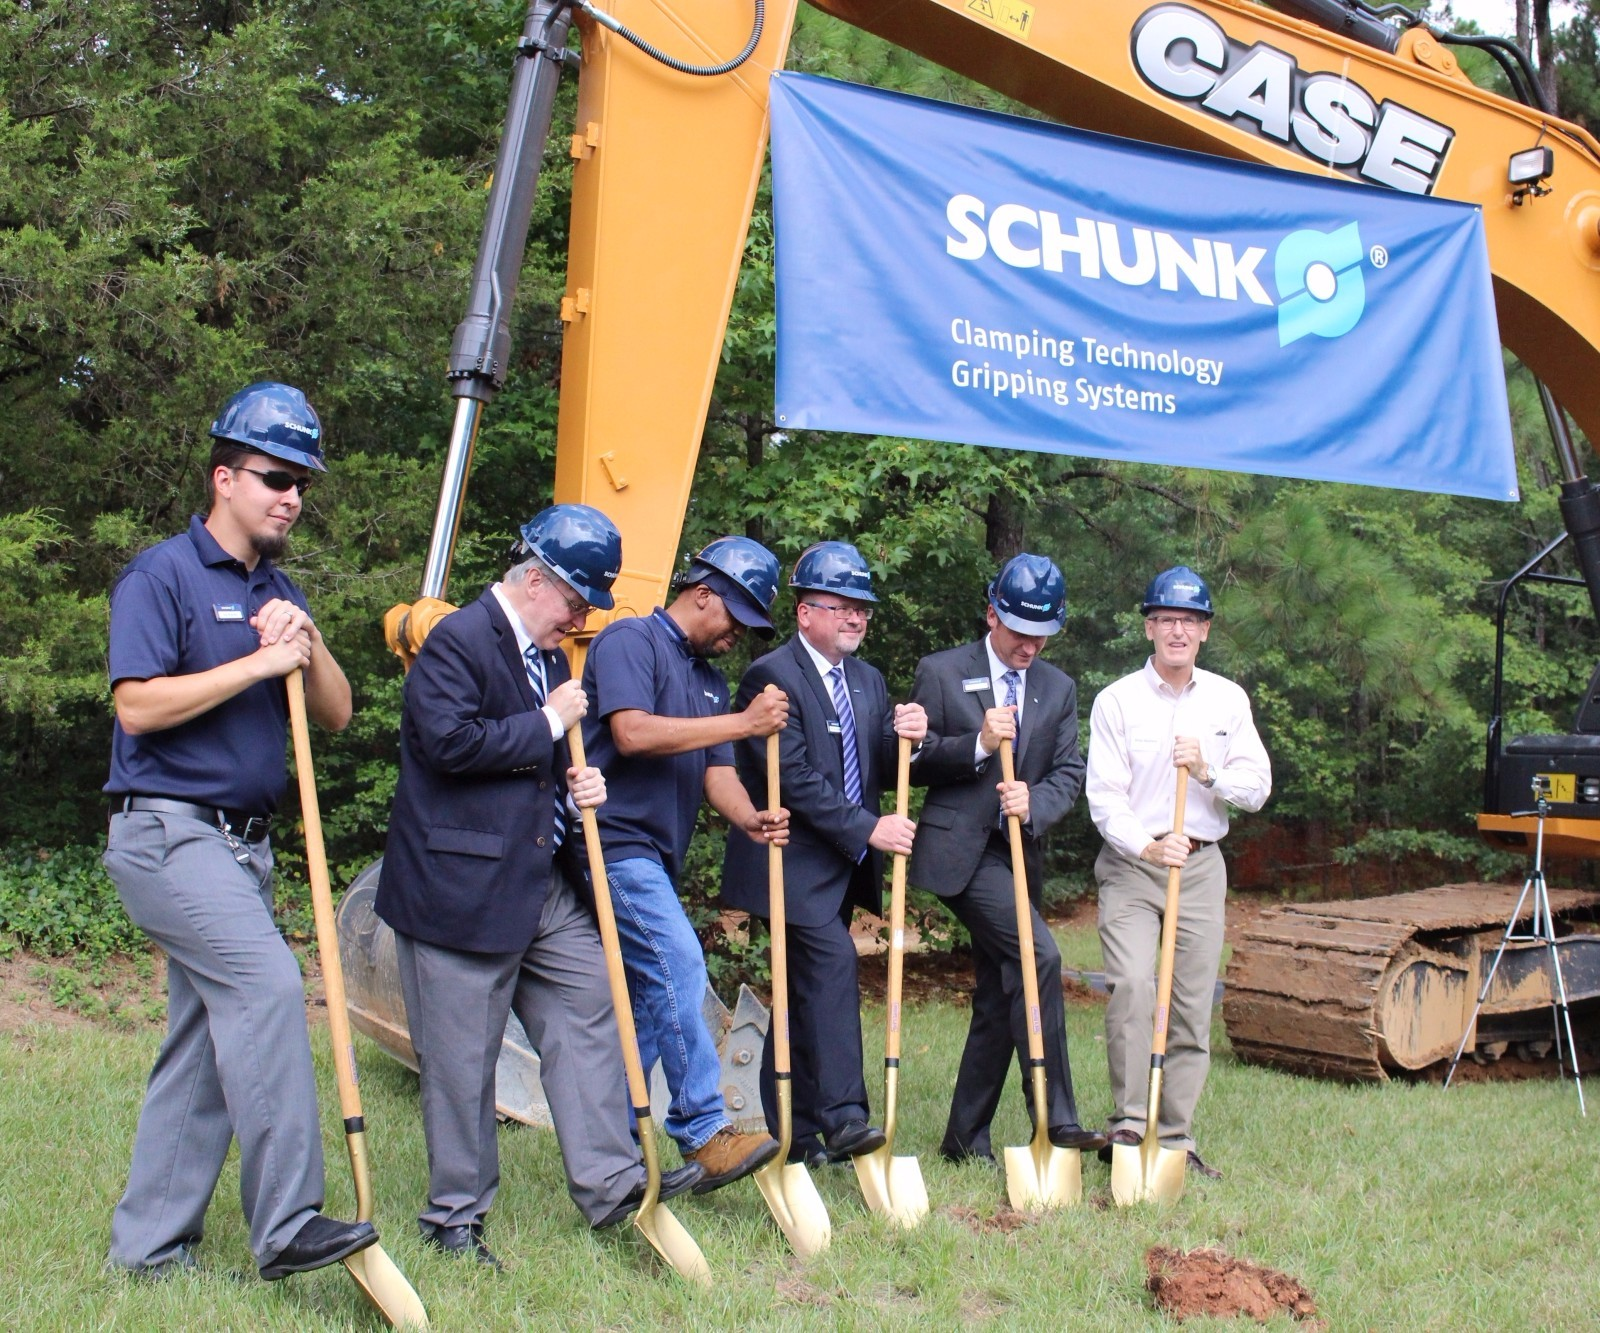 breaking ground at Schunk's U.S. headquarters